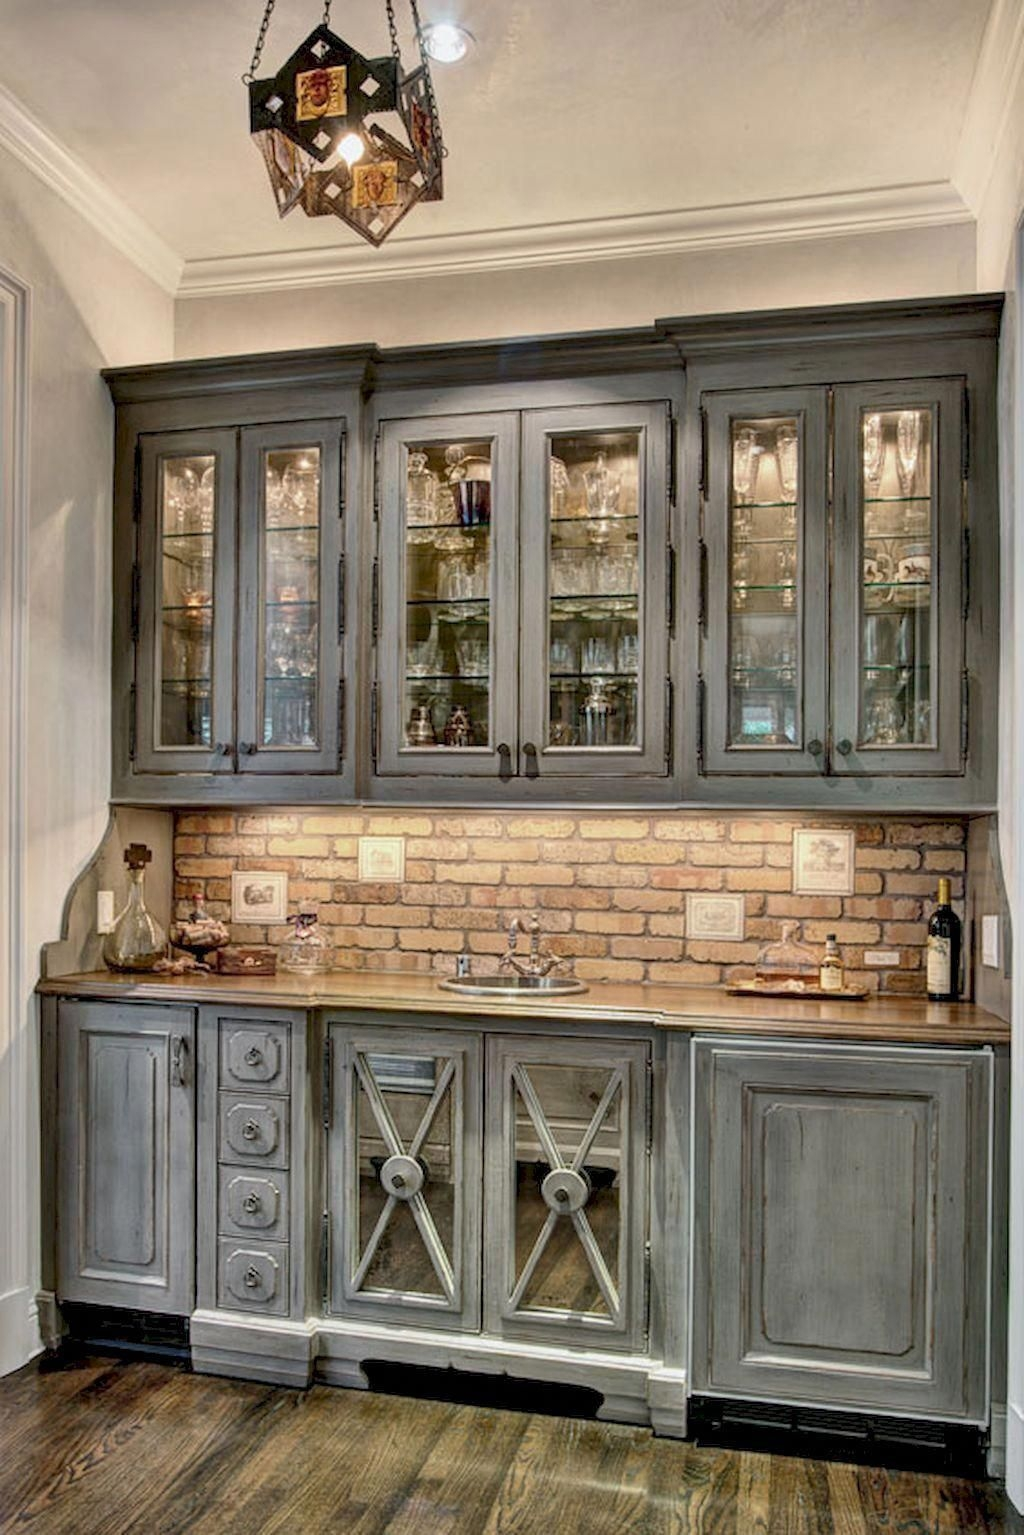 grey distressed weathered kitchen cabinets with glass doors brick backsplash and antique vintage decor